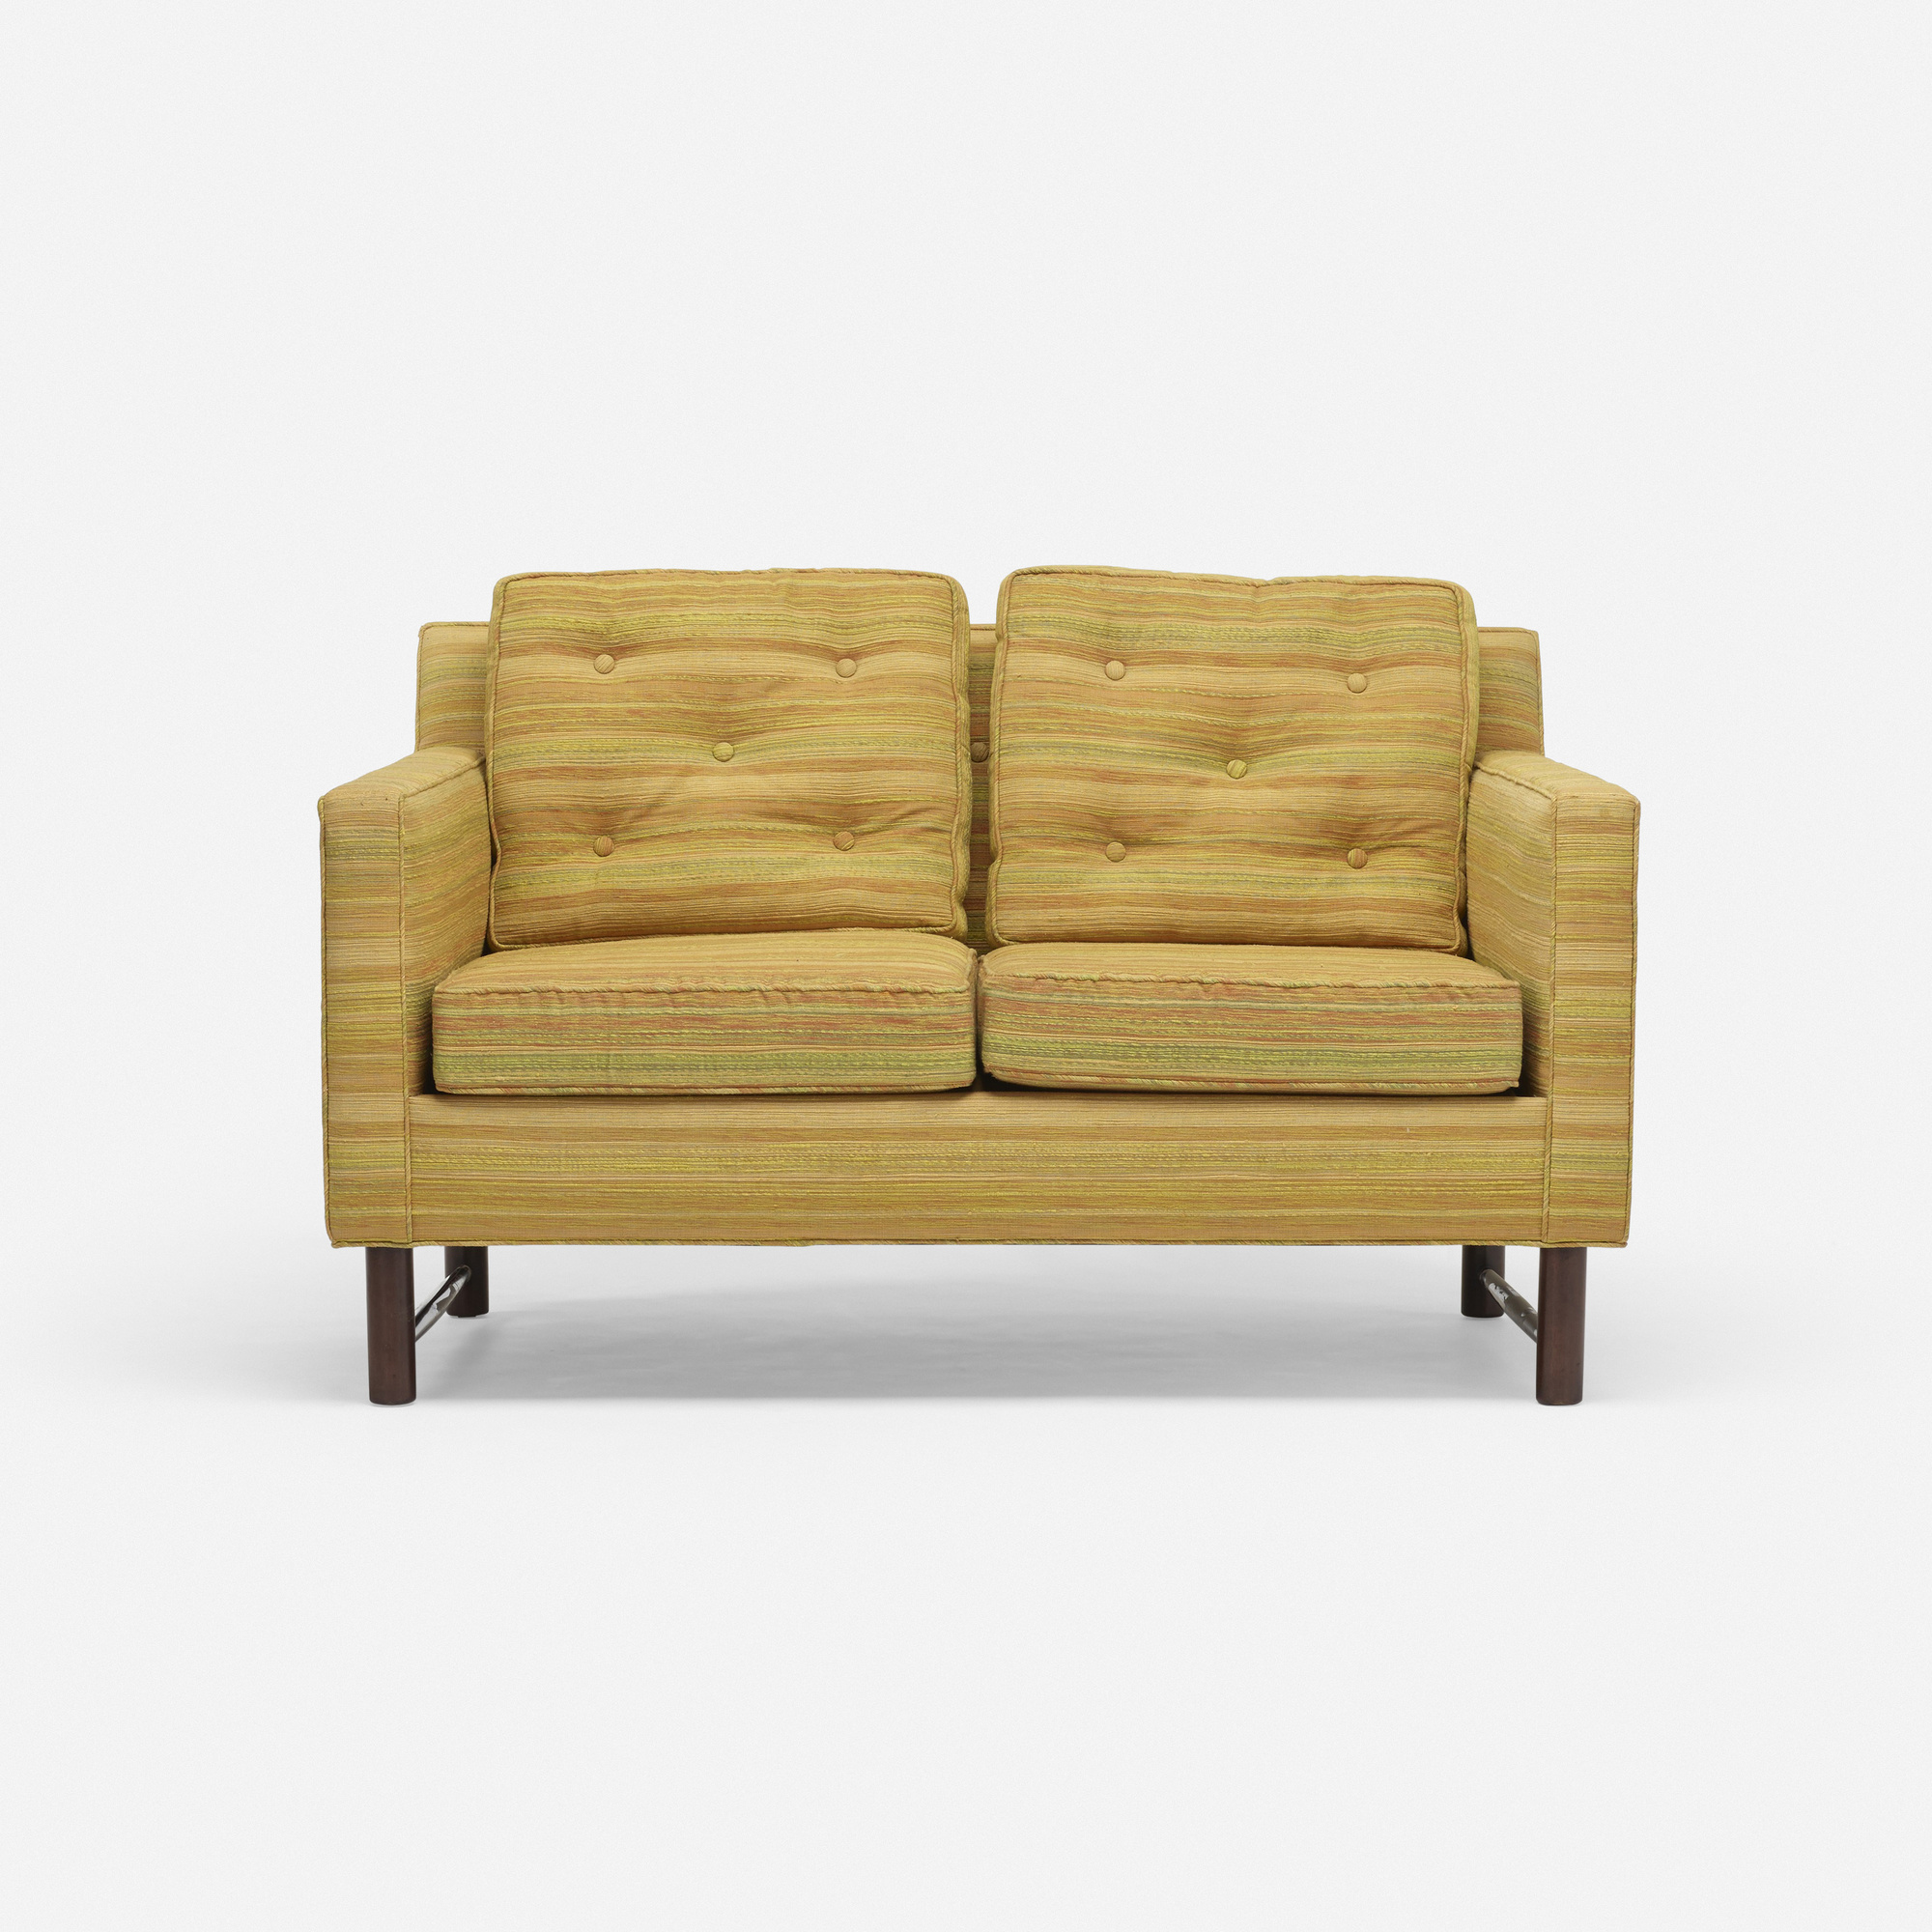 809: Edward Wormley / settee, model 253 (2 of 3)